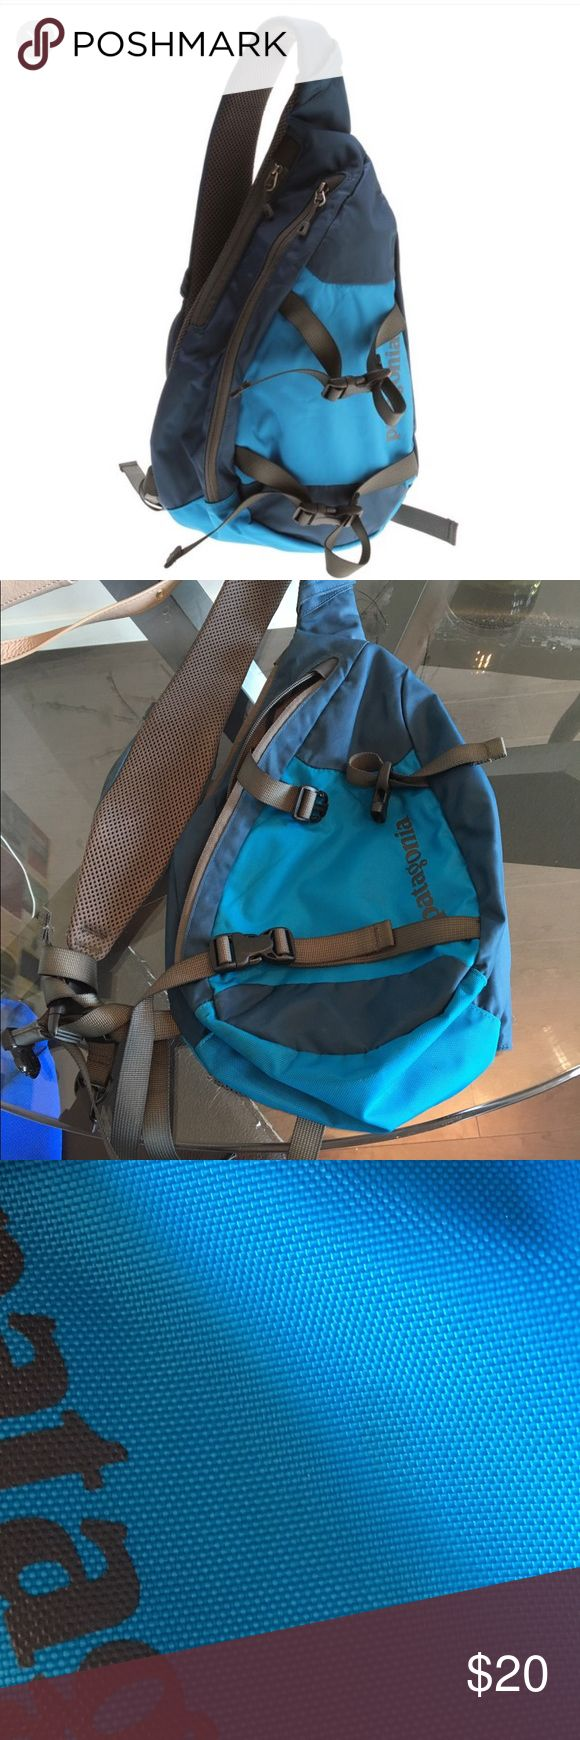 Patagonia bag Patagonia bag. A few stains on the bottom and on front but other than that it's in great condition. Stains on front are hardly noticeable. See pic. Patagonia Bags Crossbody Bags